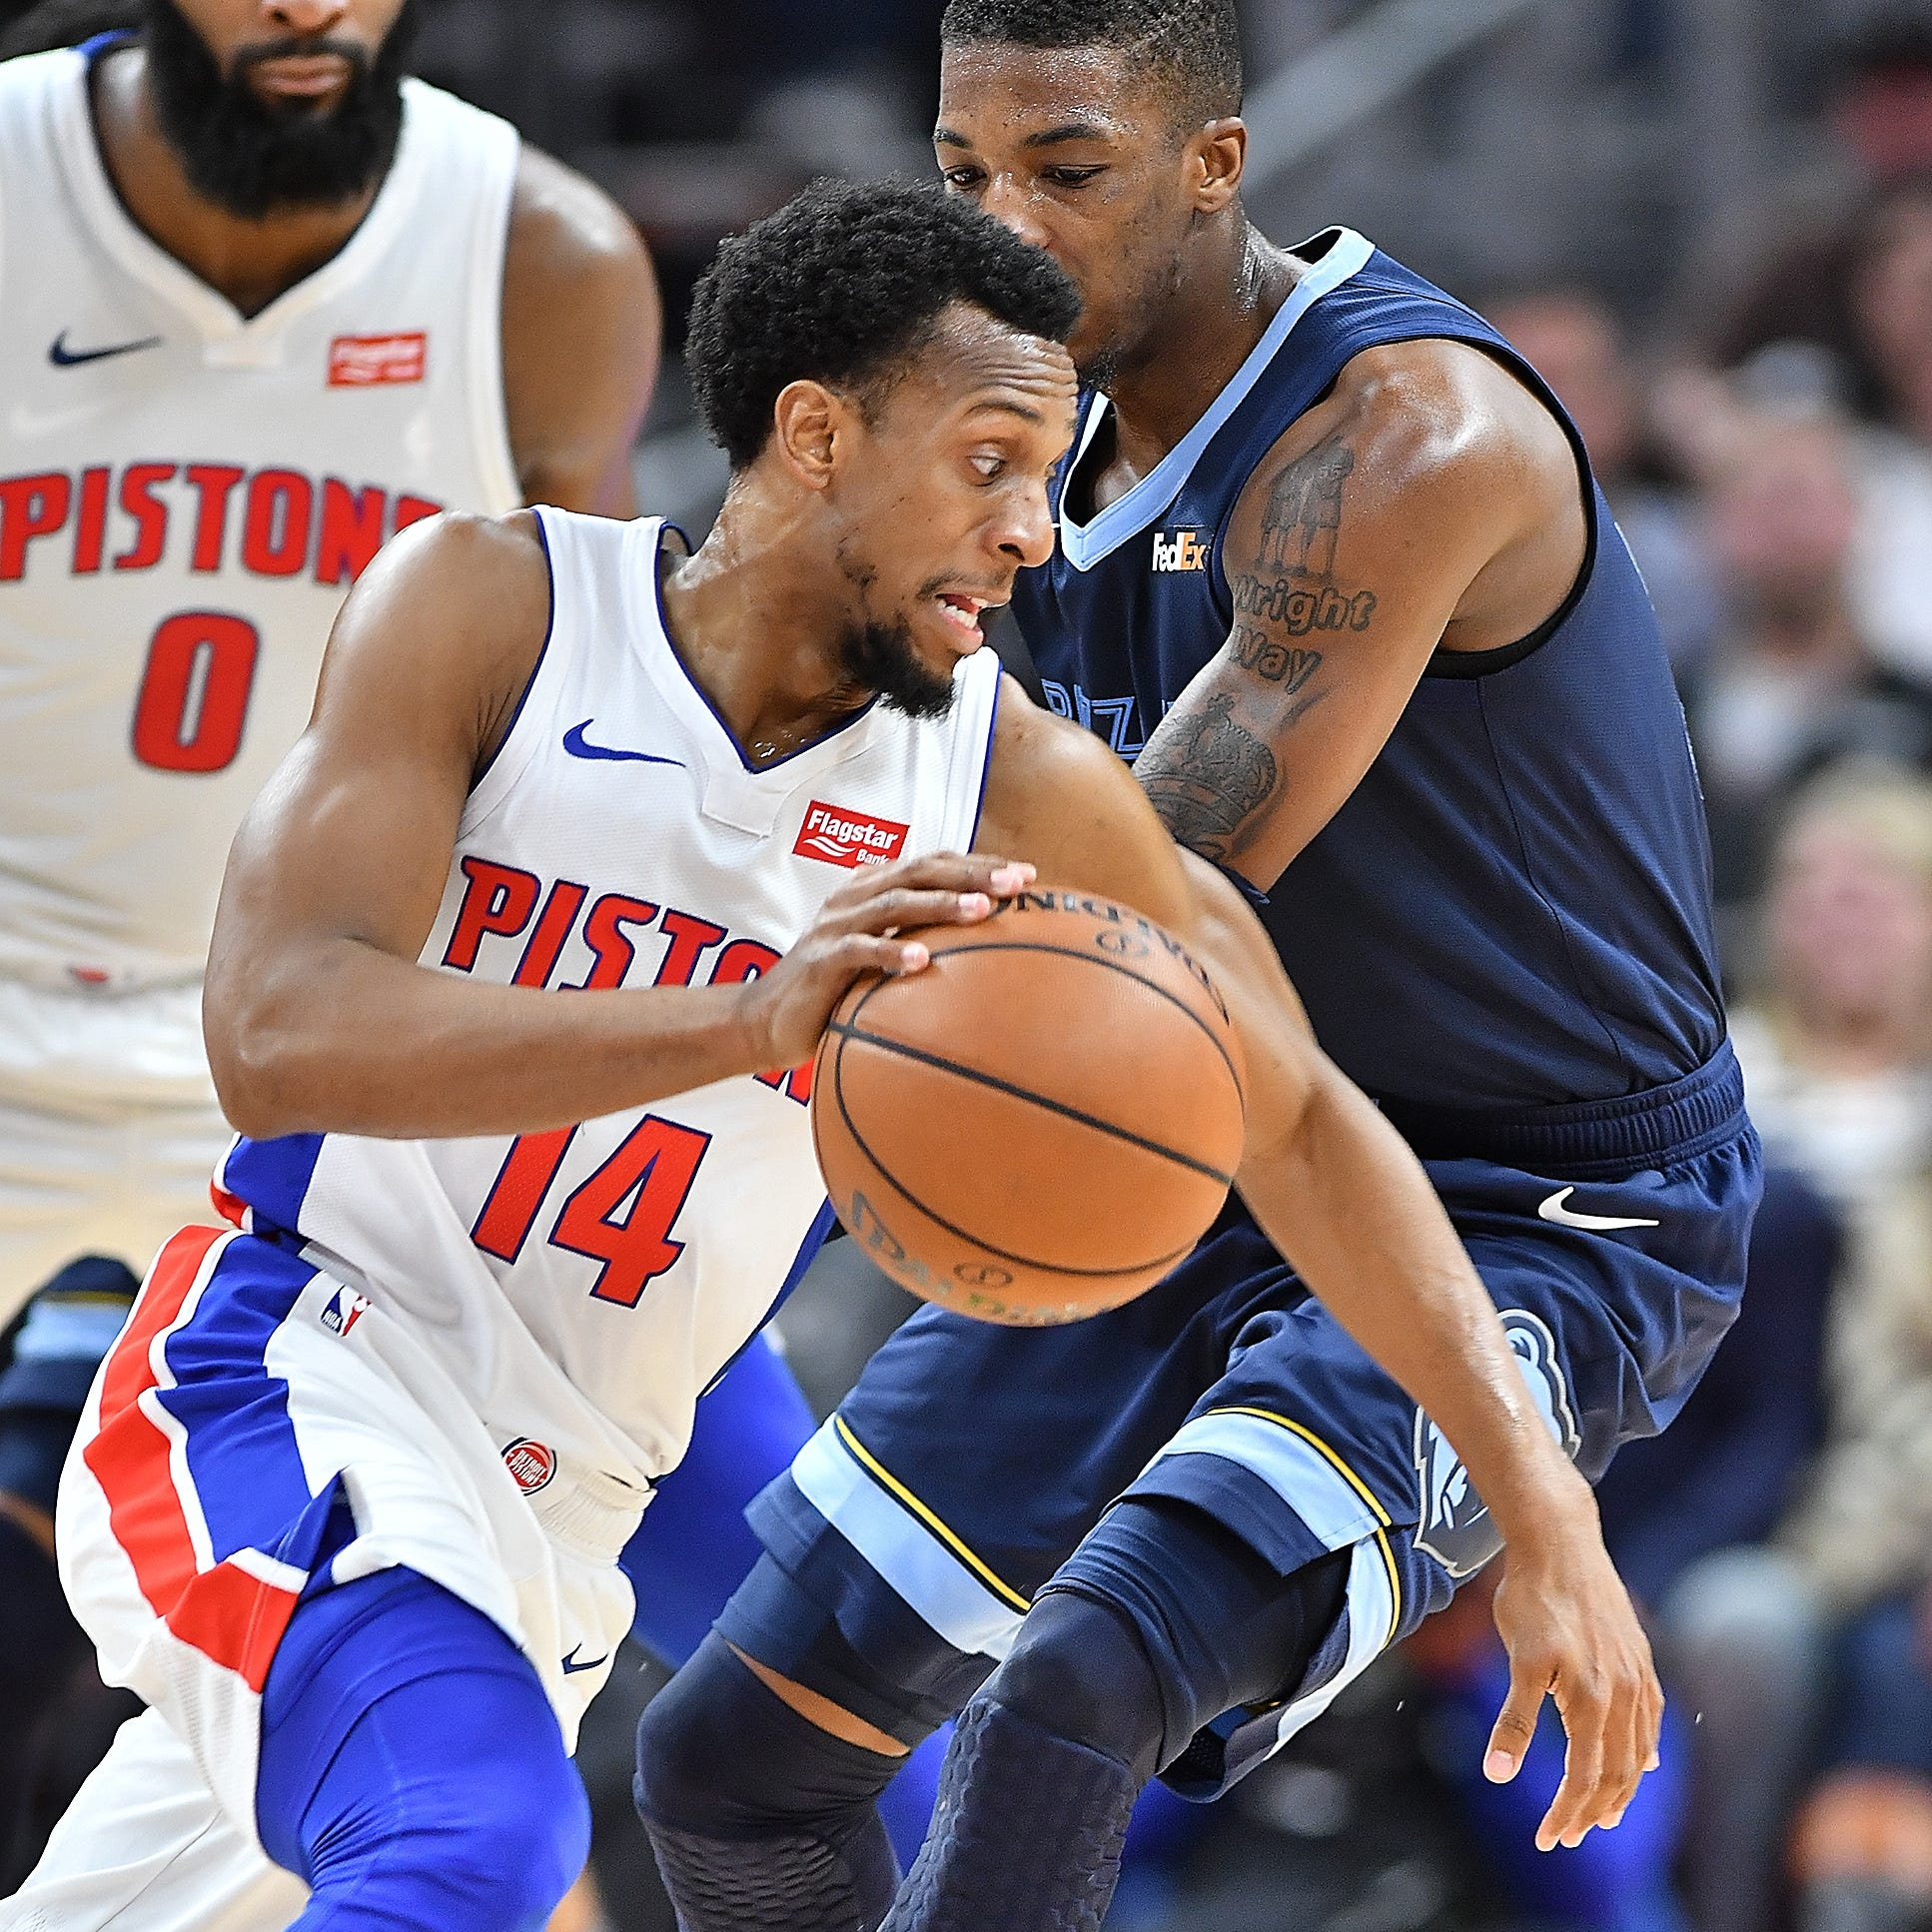 What needs to happen for Pistons to clinch playoff spot